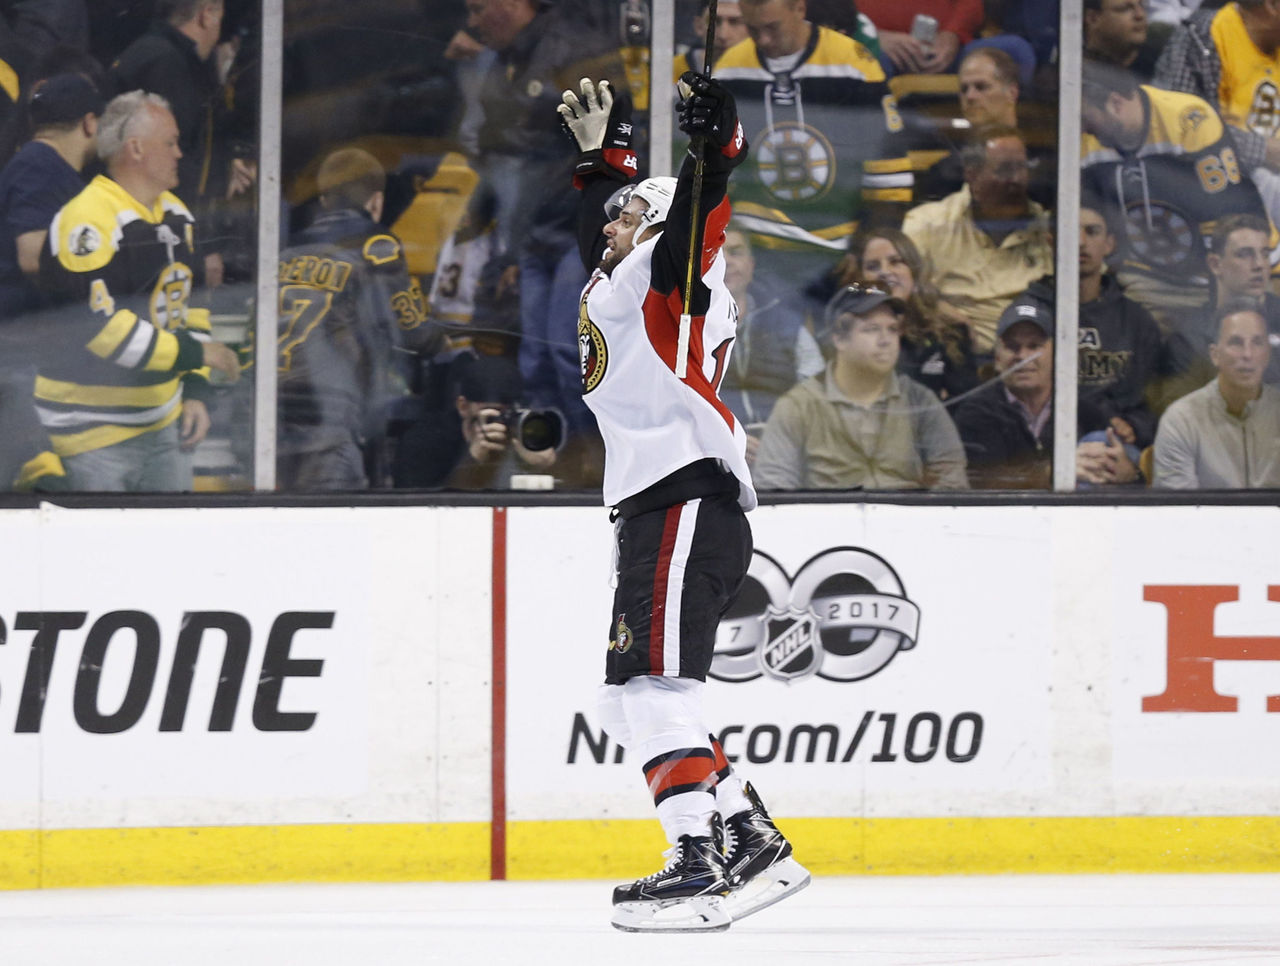 Cropped 2017 04 23t223259z 1340499675 nocid rtrmadp 3 nhl stanley cup playoffs ottawa senators at boston bruins